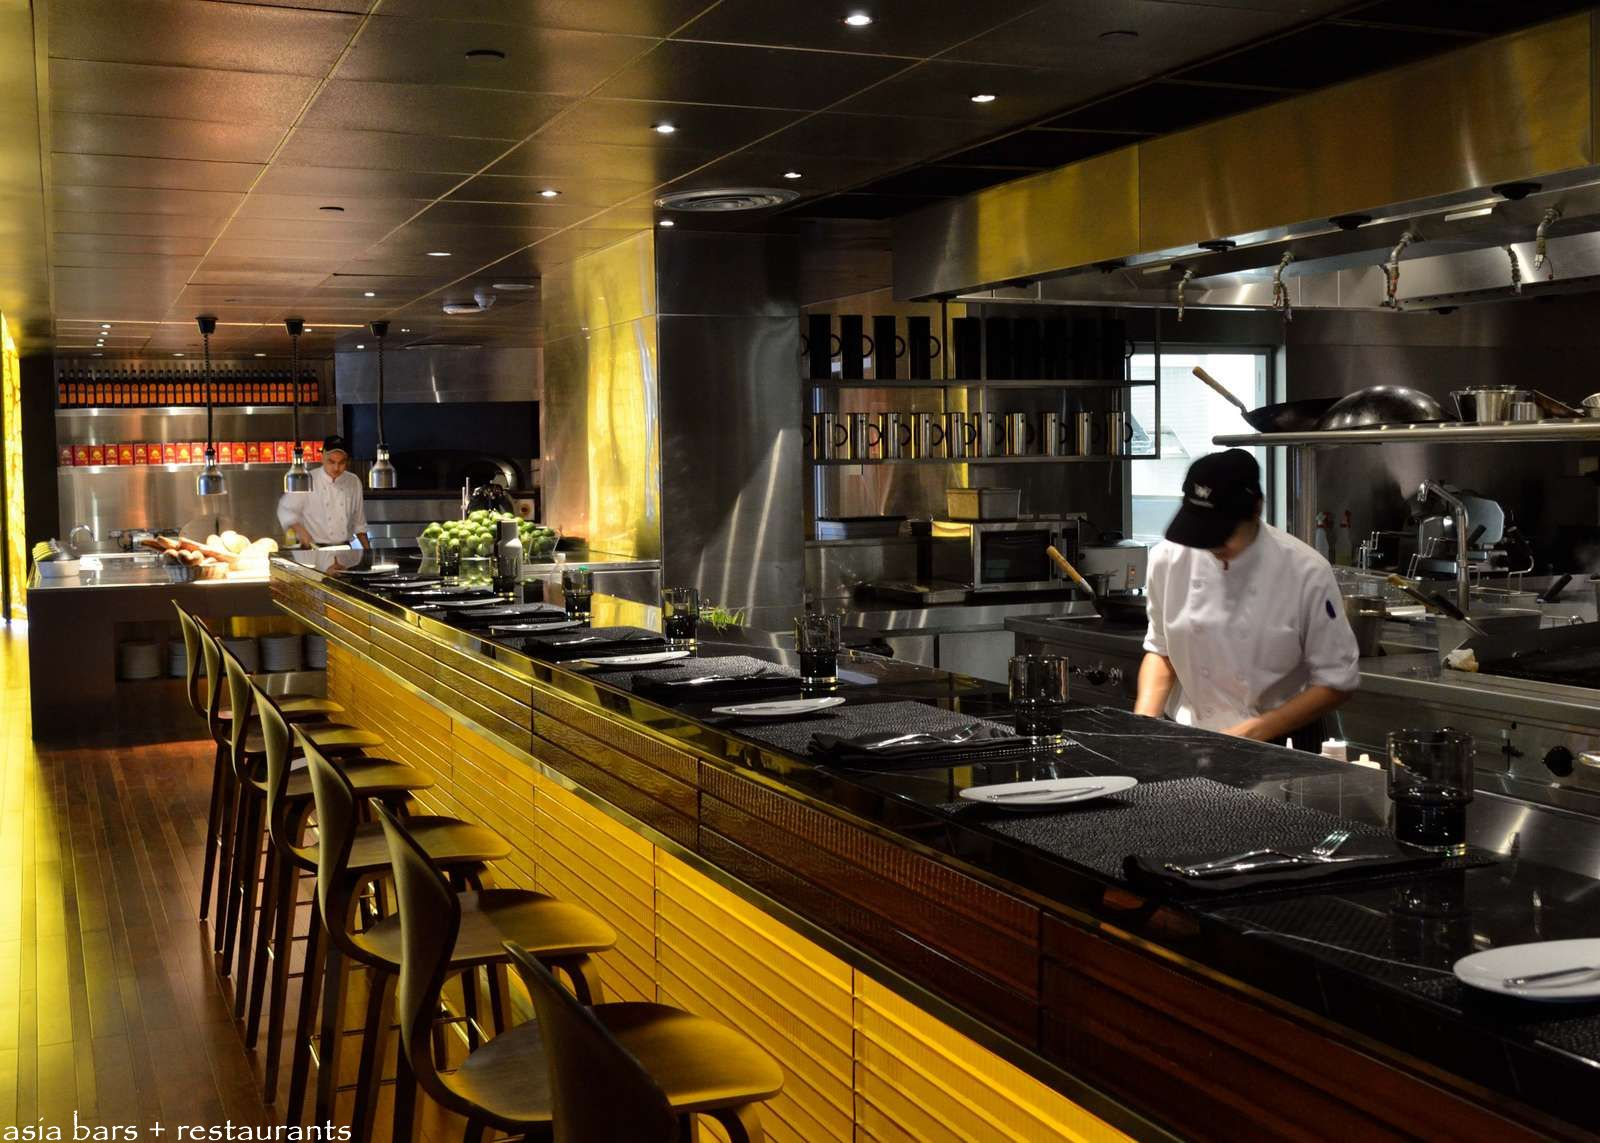 The kitchen table signature restaurant at w bangkok asia bars restaurants - Show picture of kitchen ...